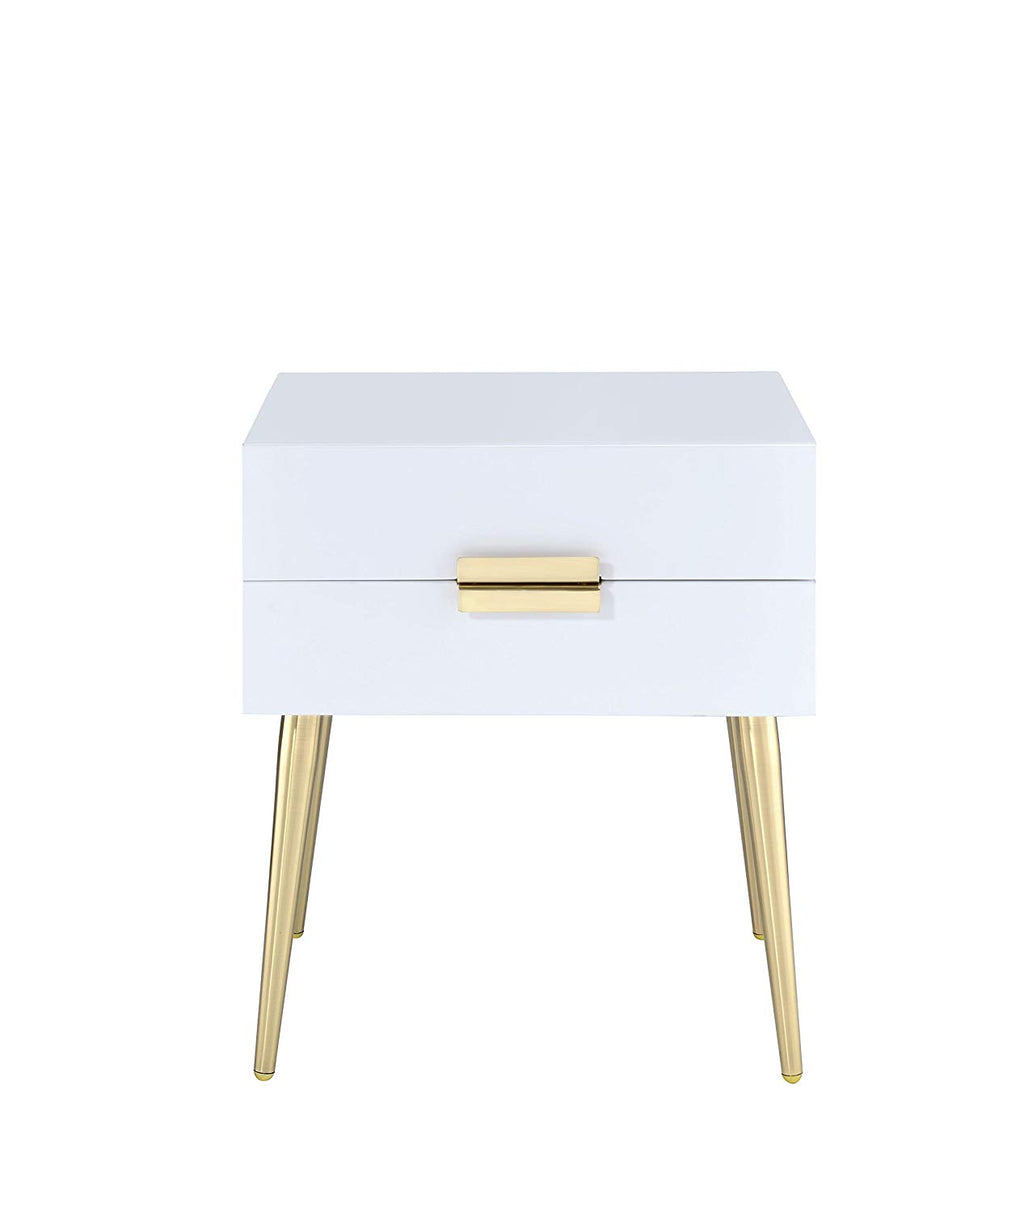 "20"" X 16"" X 24"" White And Gold Metal End Table"